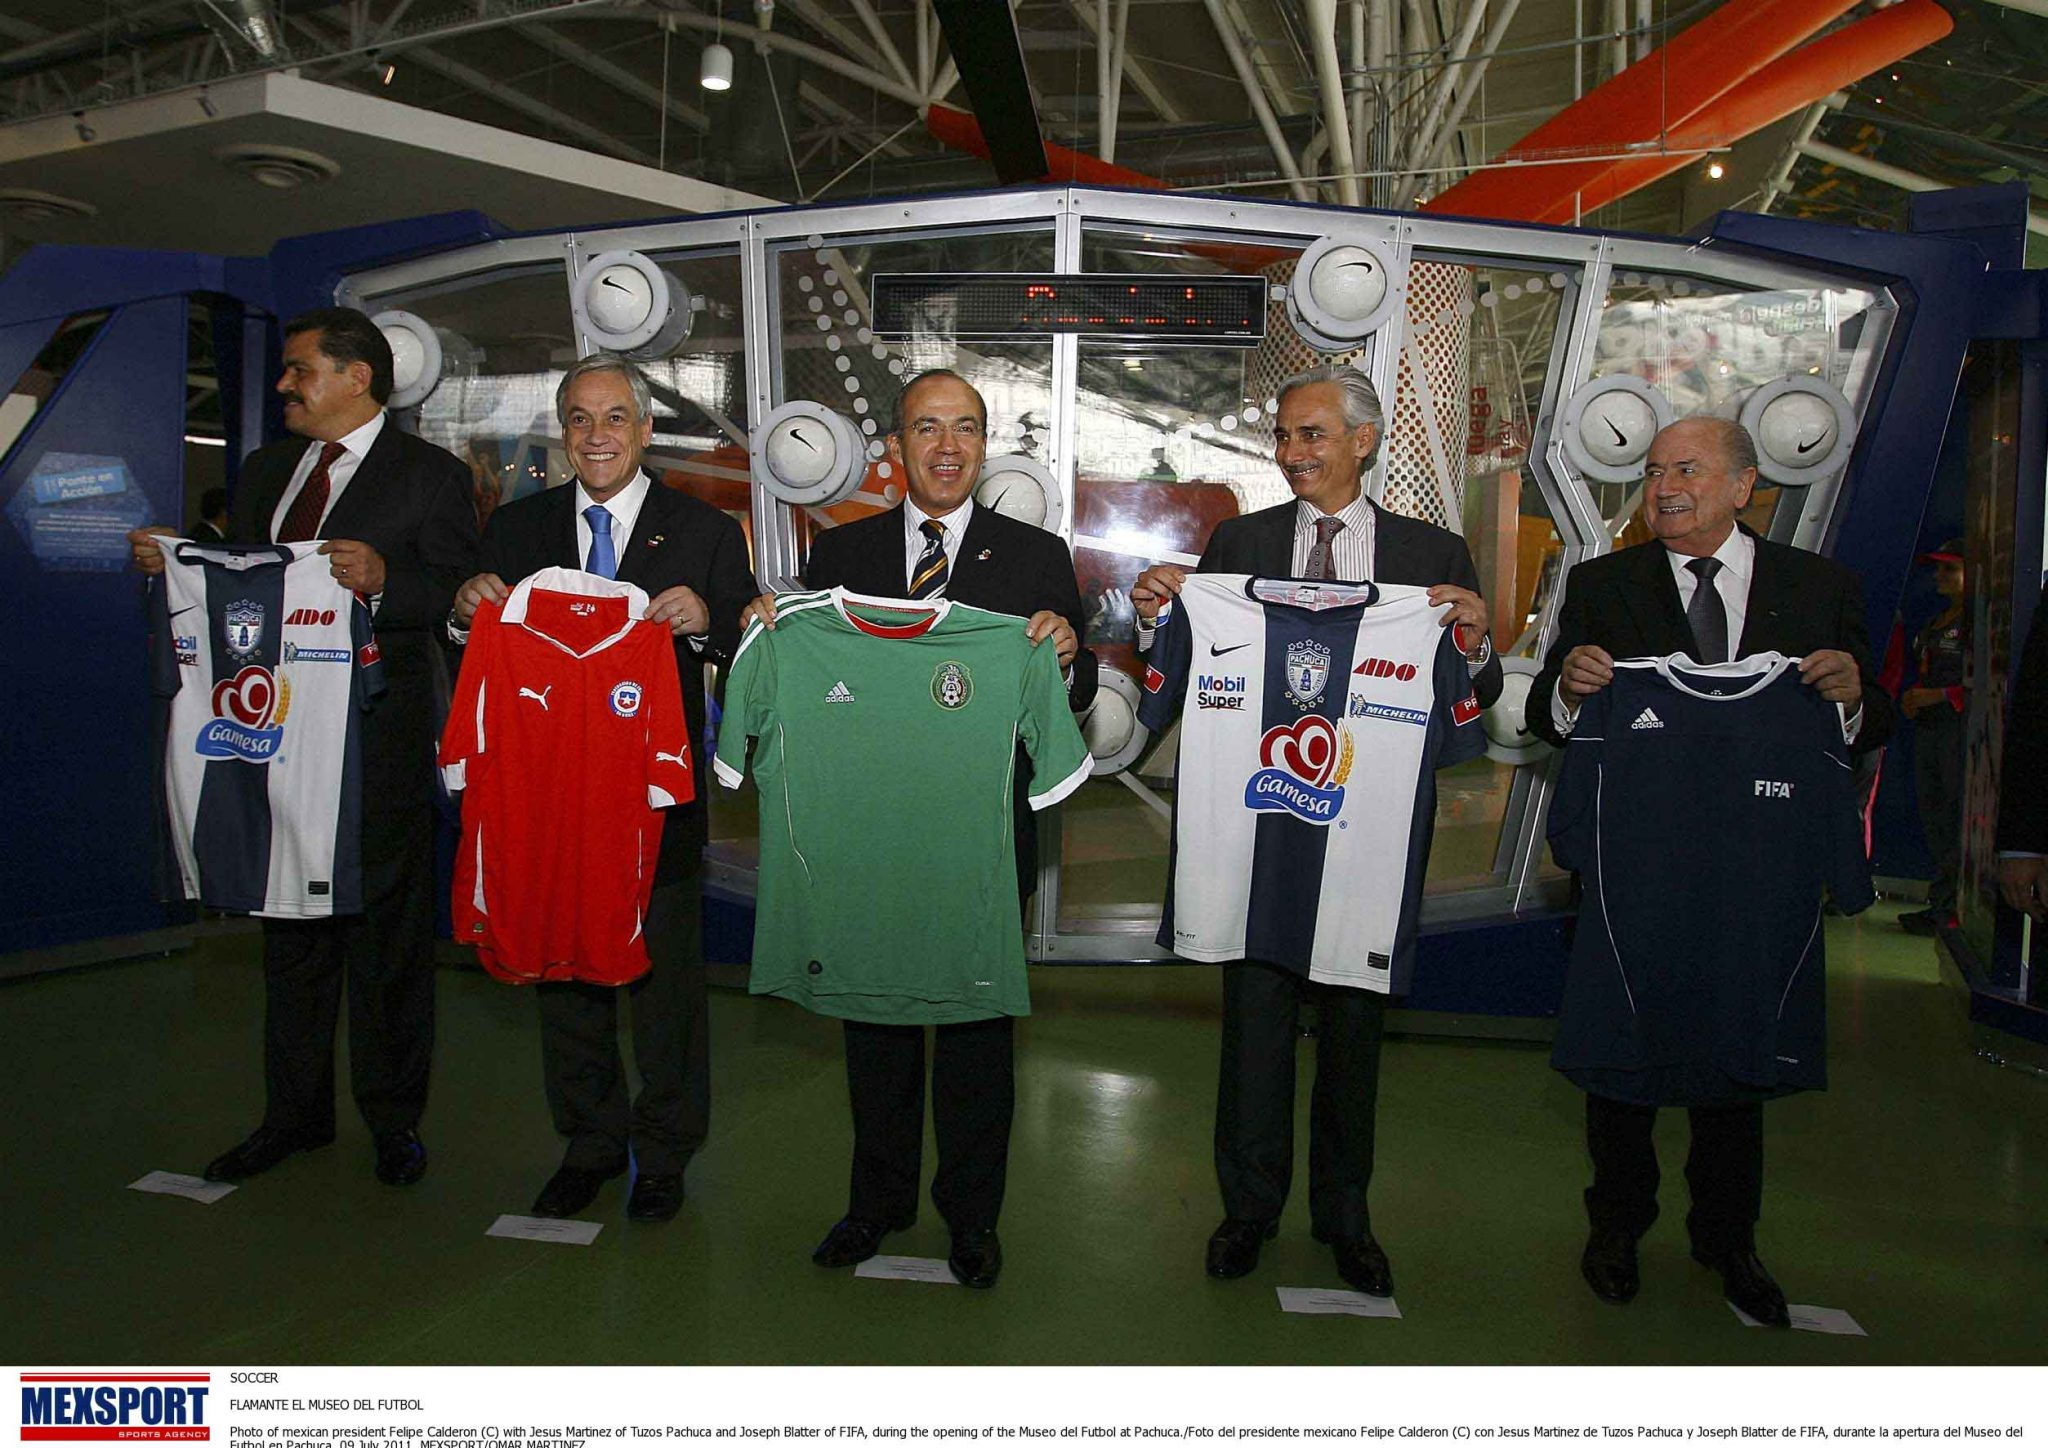 SOCCER  FLAMANTE EL MUSEO DEL FUTBOL  Photo of mexican president Felipe Calderon (C) with Jesus Martinez of Tuzos Pachuca and Joseph Blatter of FIFA, during the opening of the Museo del Futbol at Pachuca./Foto del presidente mexicano Felipe Calderon (C) con Jesus Martinez de Tuzos Pachuca y Joseph Blatter de FIFA, durante la apertura del Museo del Futbol en Pachuca. 09 July 2011. MEXSPORT/OMAR MARTINEZ